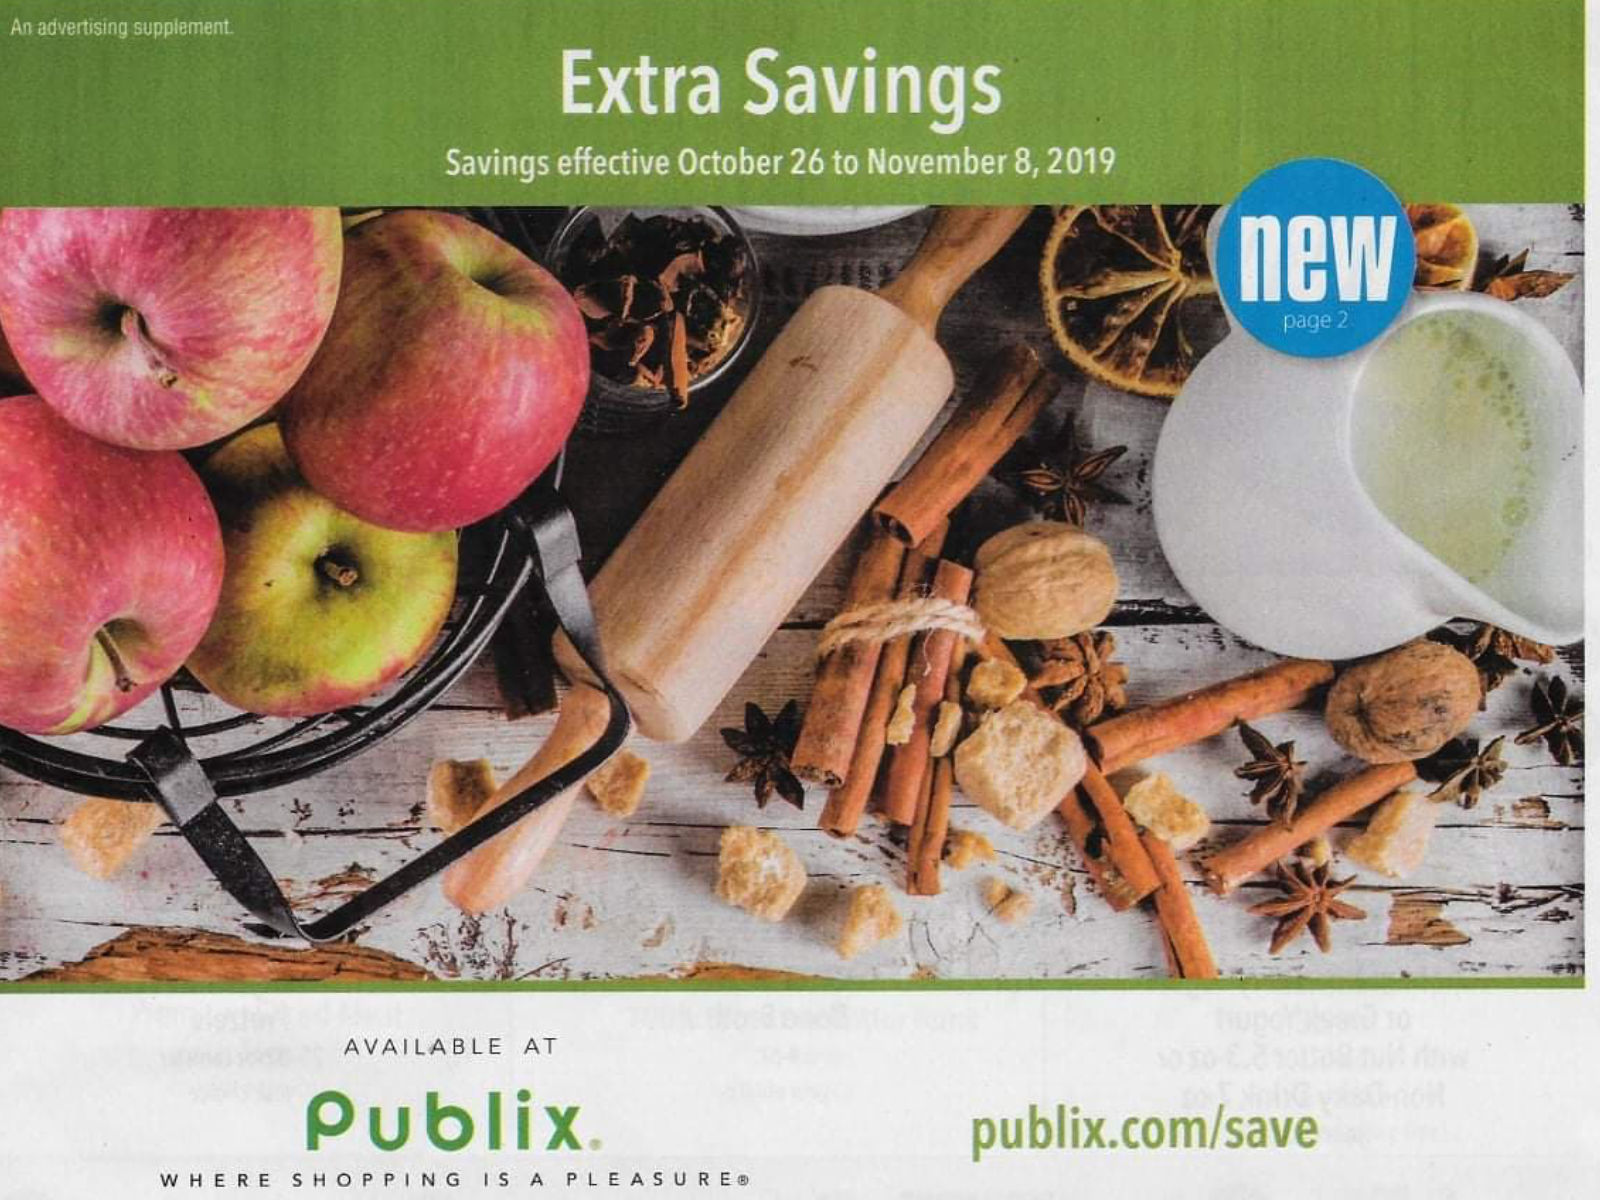 """Publix Grocery Advantage Buy Flyer – """"Extra Savings"""" Valid 10/26 to 11/8 on I Heart Publix"""